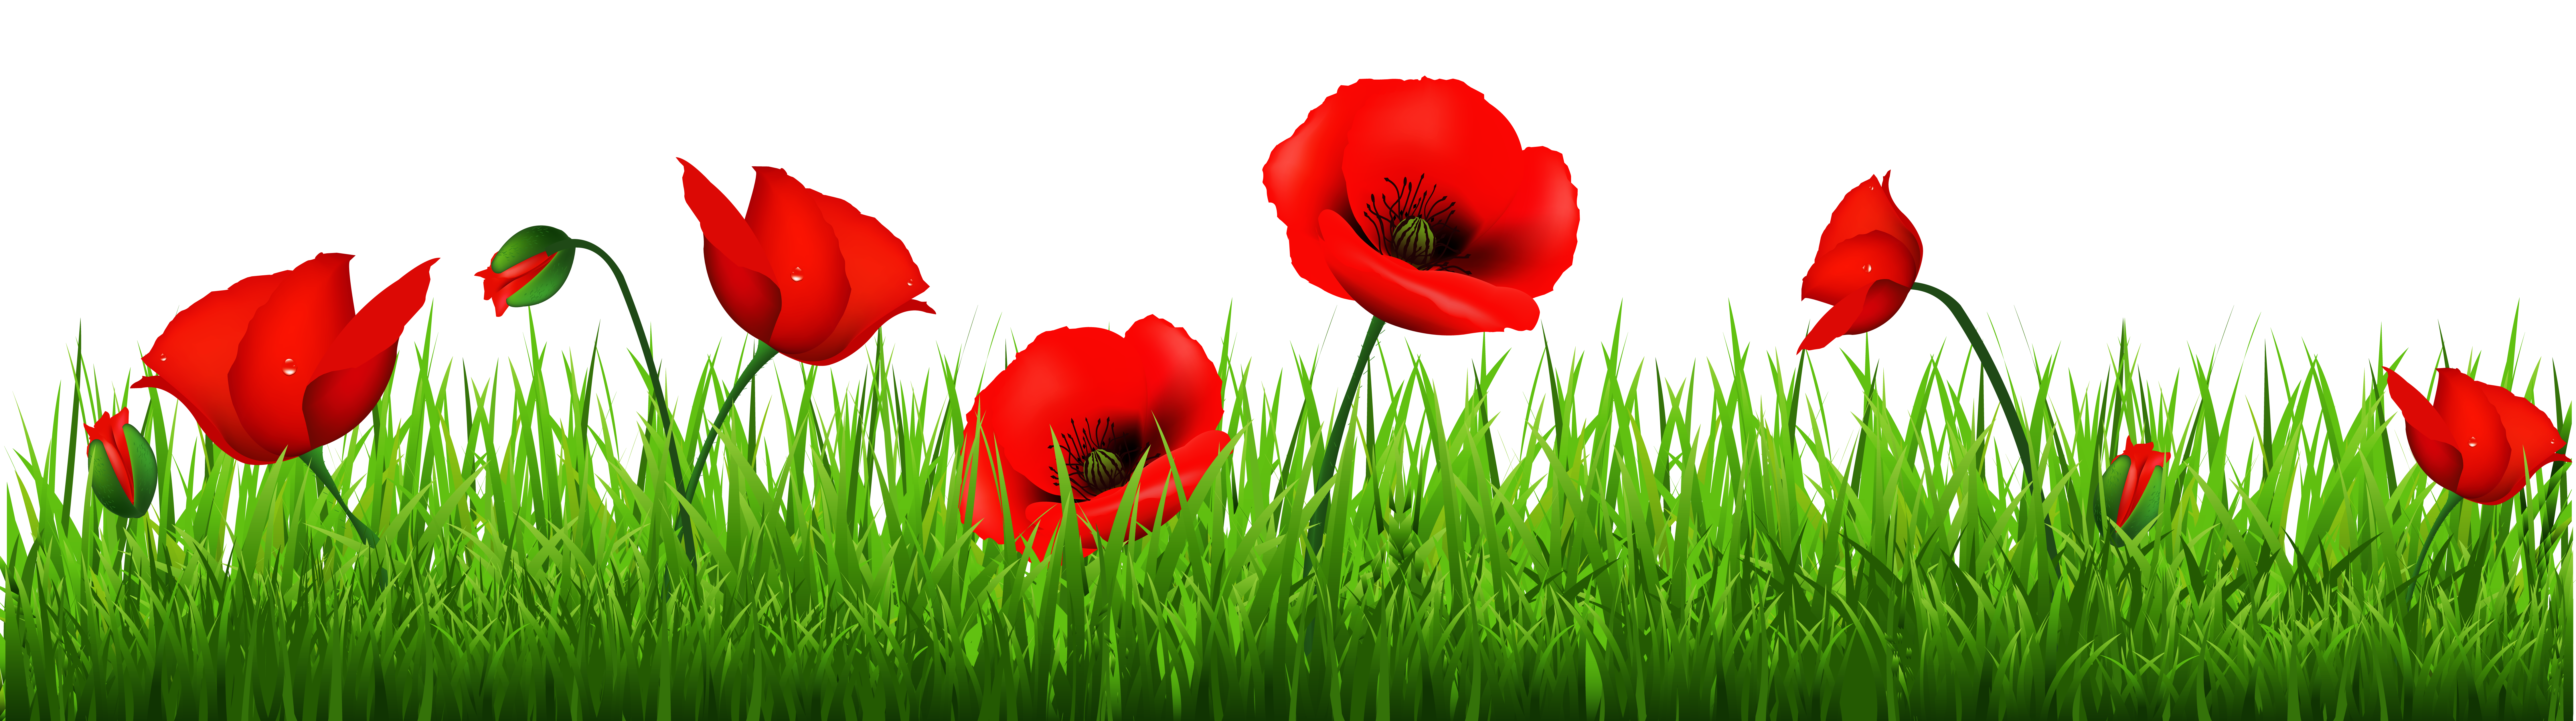 Free poppy clipart images.